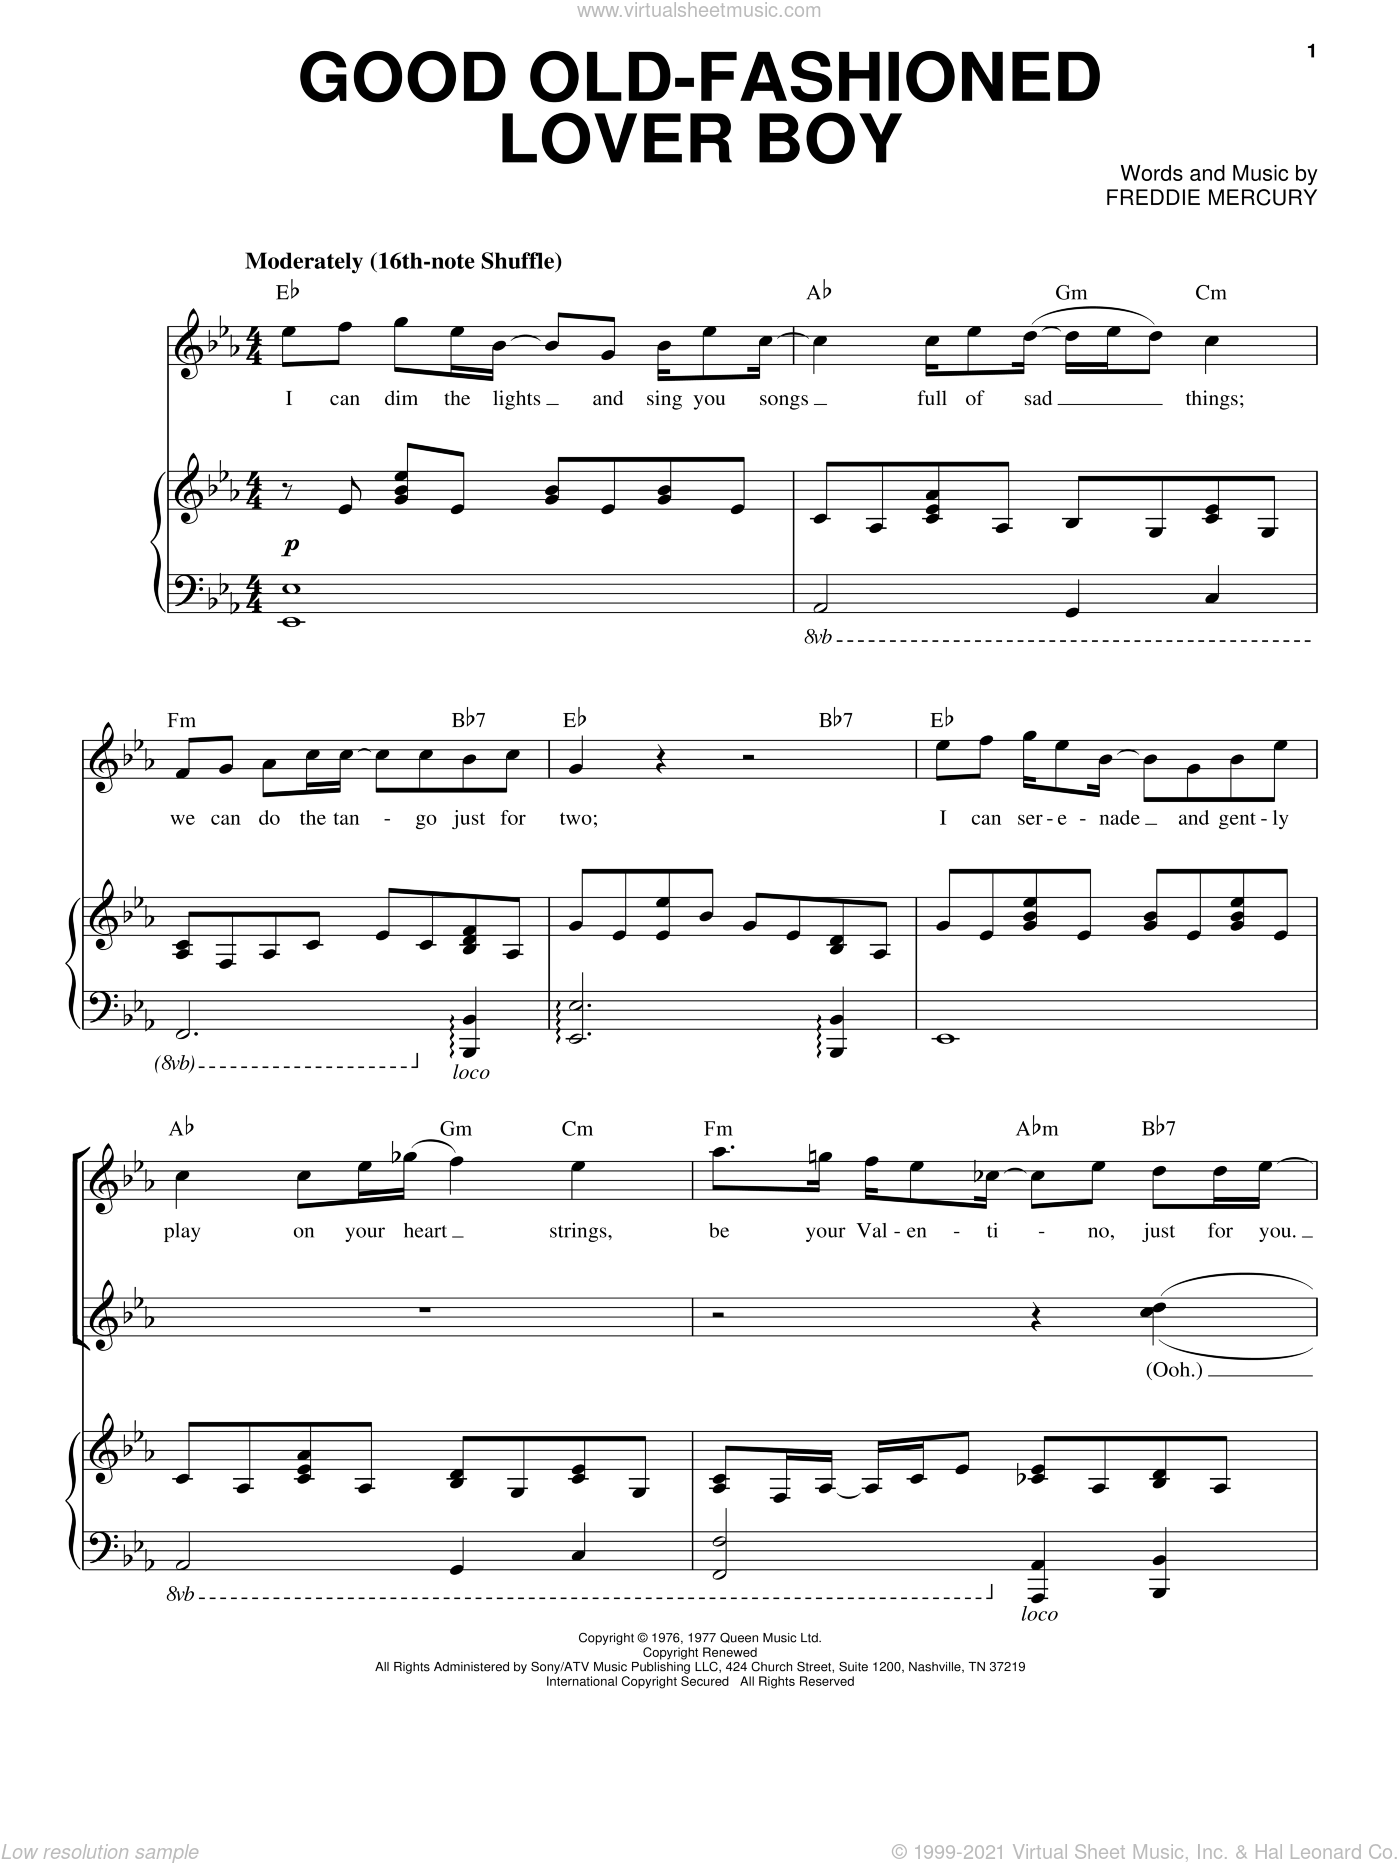 Good Old-Fashioned Lover Boy sheet music for voice and piano by Queen and Freddie Mercury, intermediate skill level